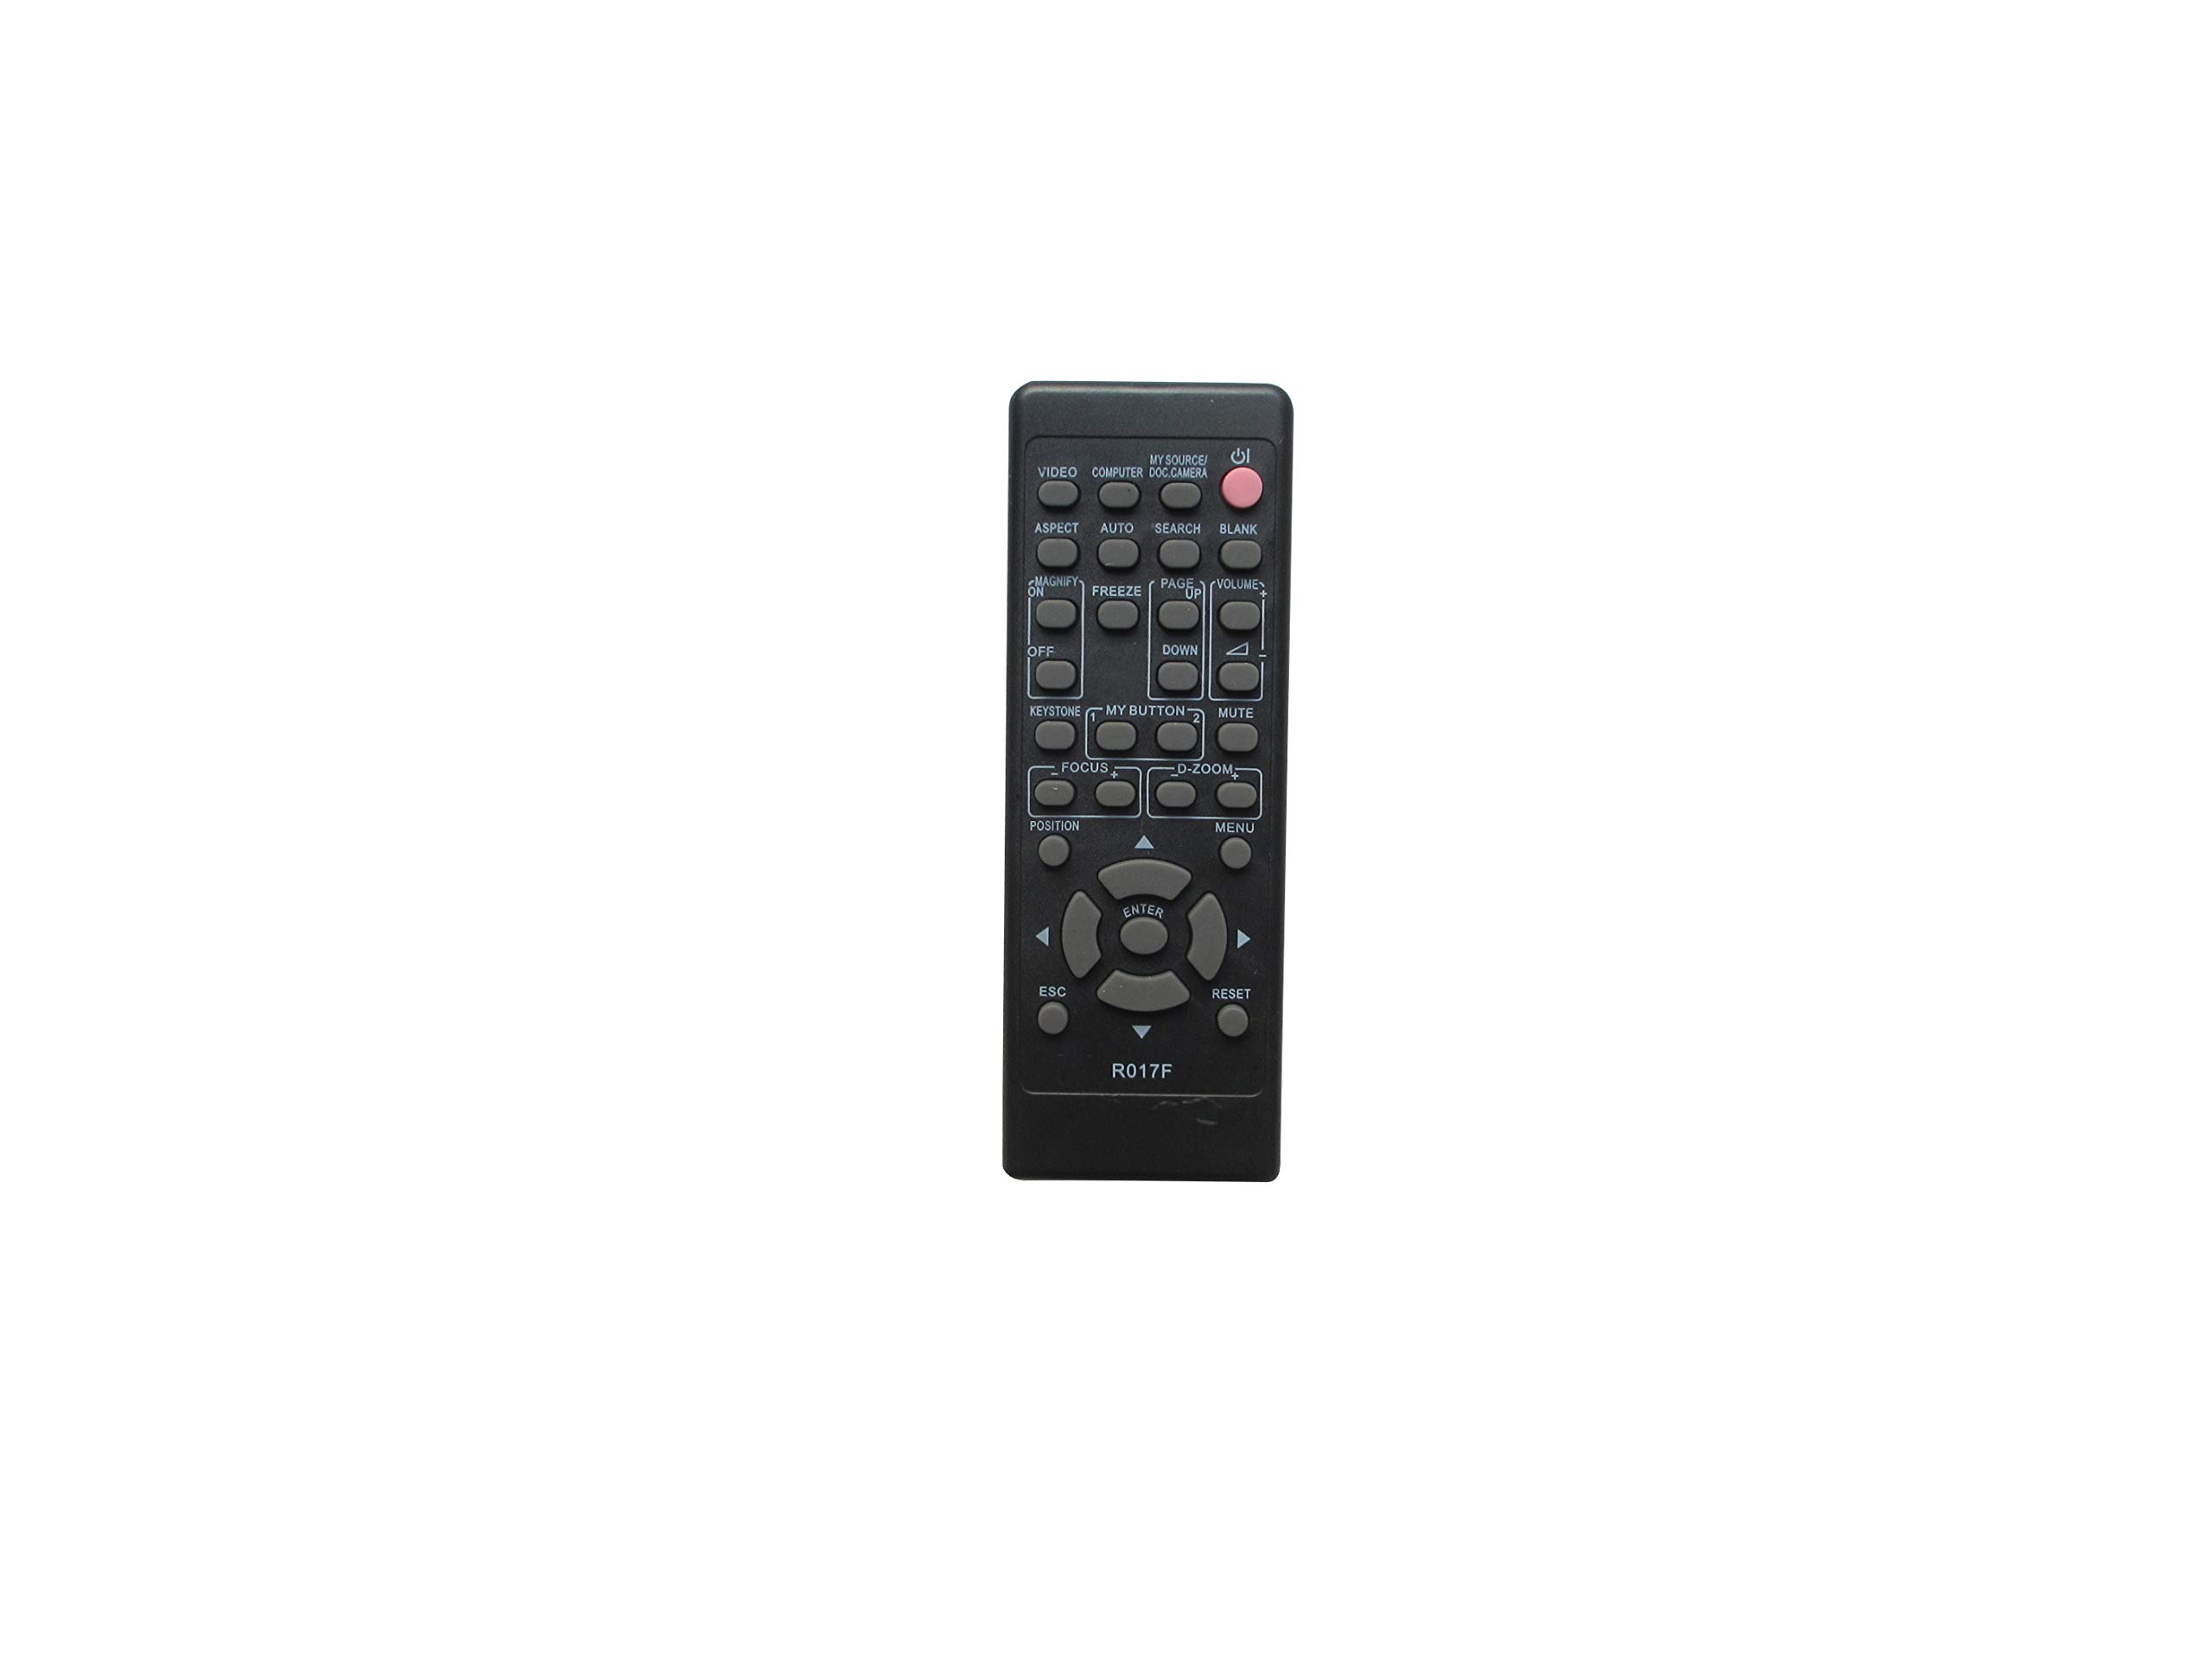 Remote Control for Hitachi CP-X3 CP-X275WAT CP-X300WF CP-X3015WN CP-X2510N CP-X2515WN CP-X2521WN CP-X253 3LCD Projector by Easytry123